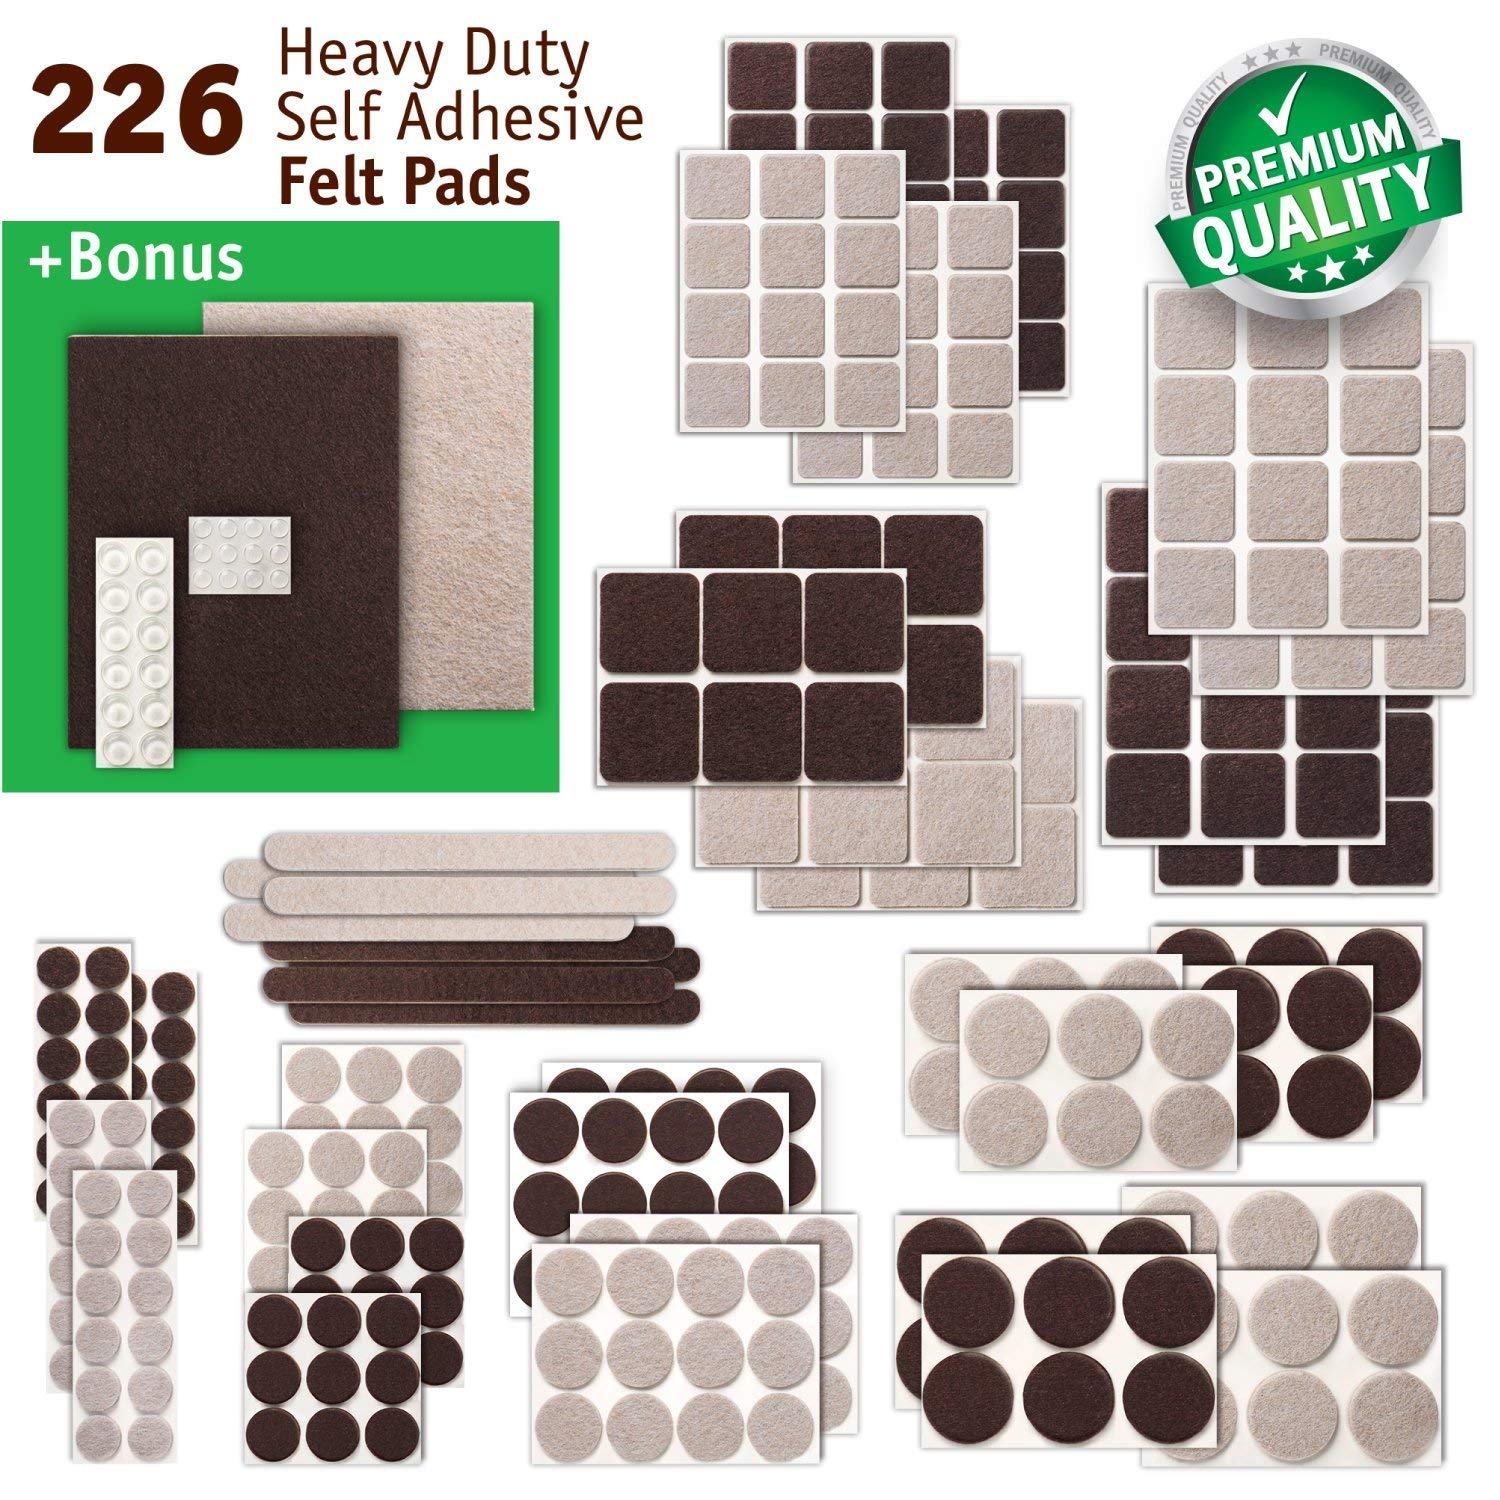 New Anti Scratch Premium Felt Pads – 226 pcs. Large Pack – Best Felt Furniture Pads for Hardwood Floors, Vinyl, Laminate – Chair Leg Floor Protectors Bonus: 24 Bumper Pads & 2 Felt Sheets (2 Colors)